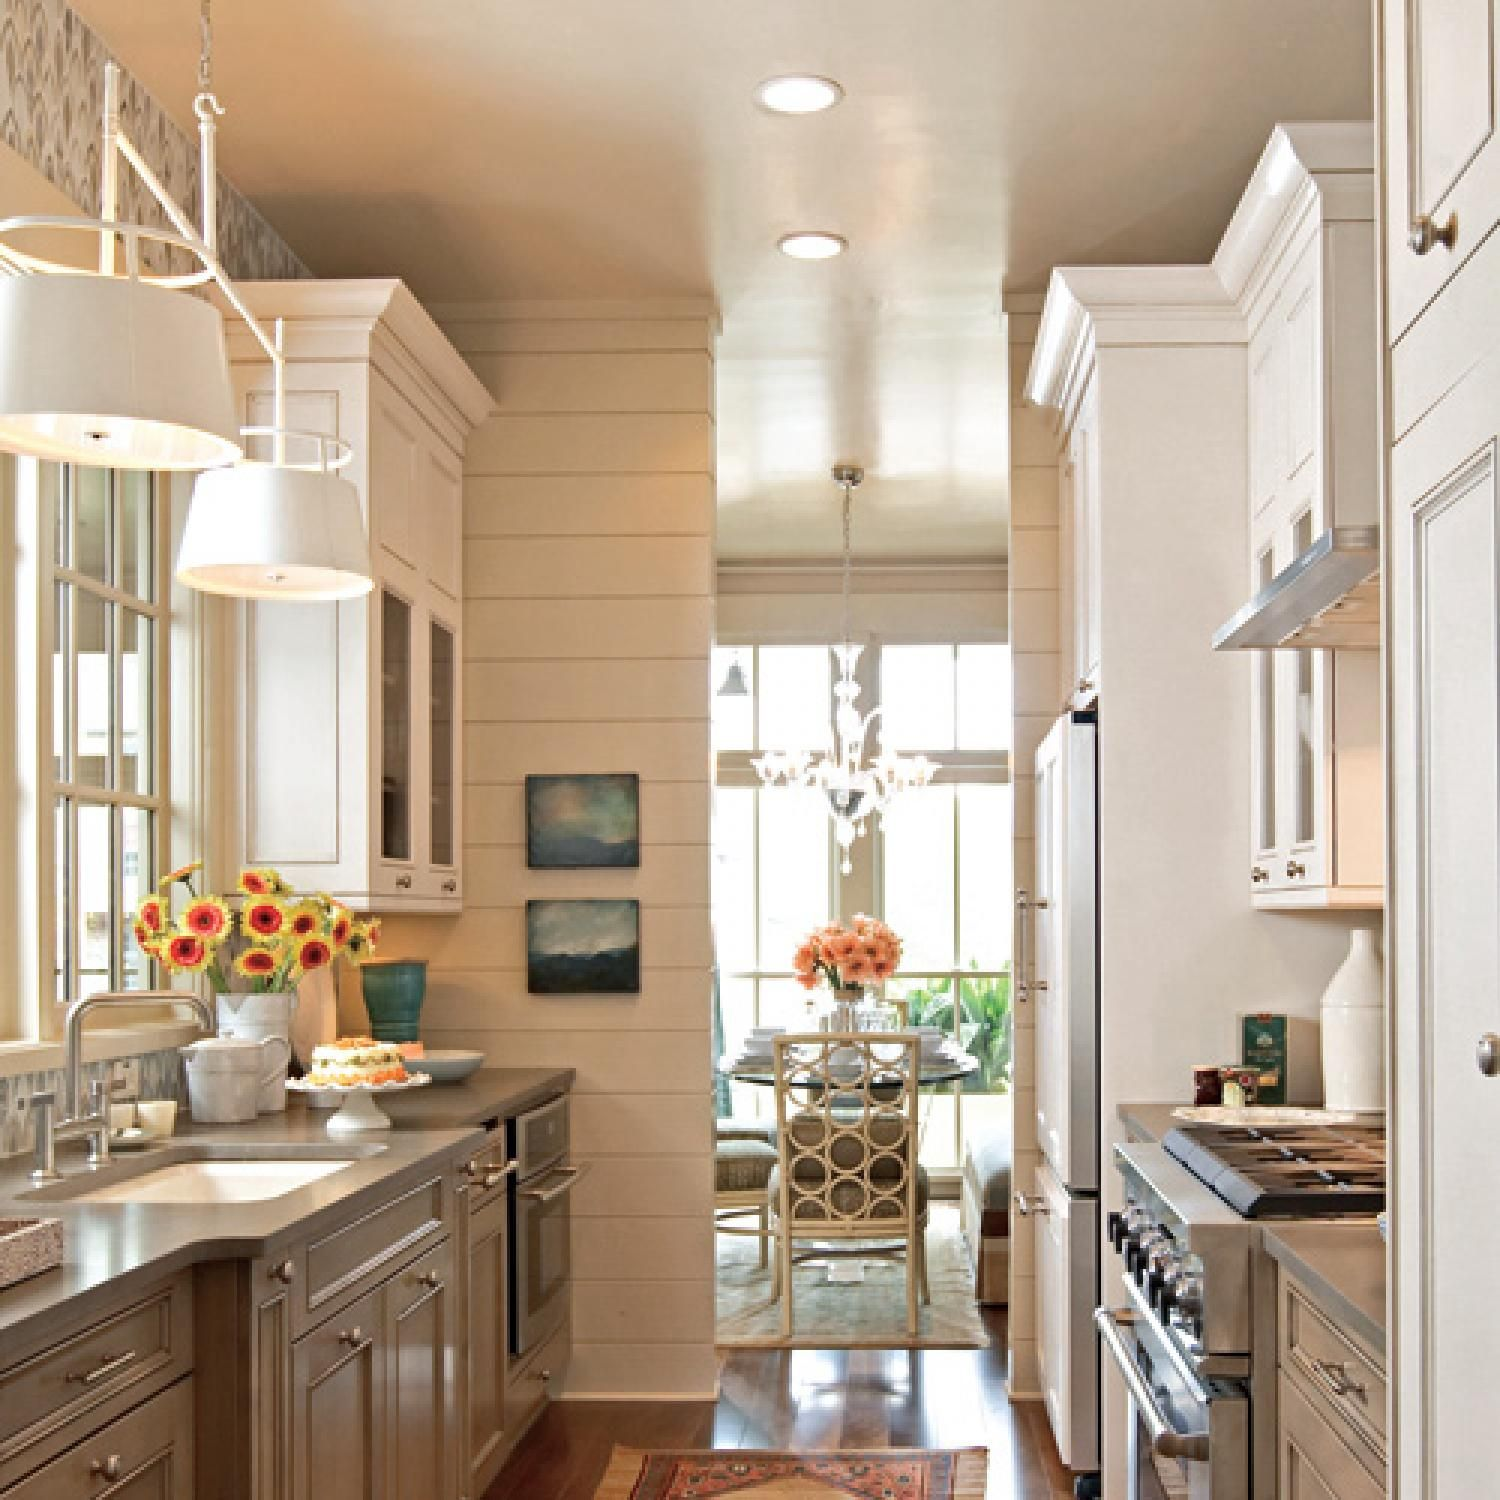 In the kitchen pictured above, sophisticated earth tones